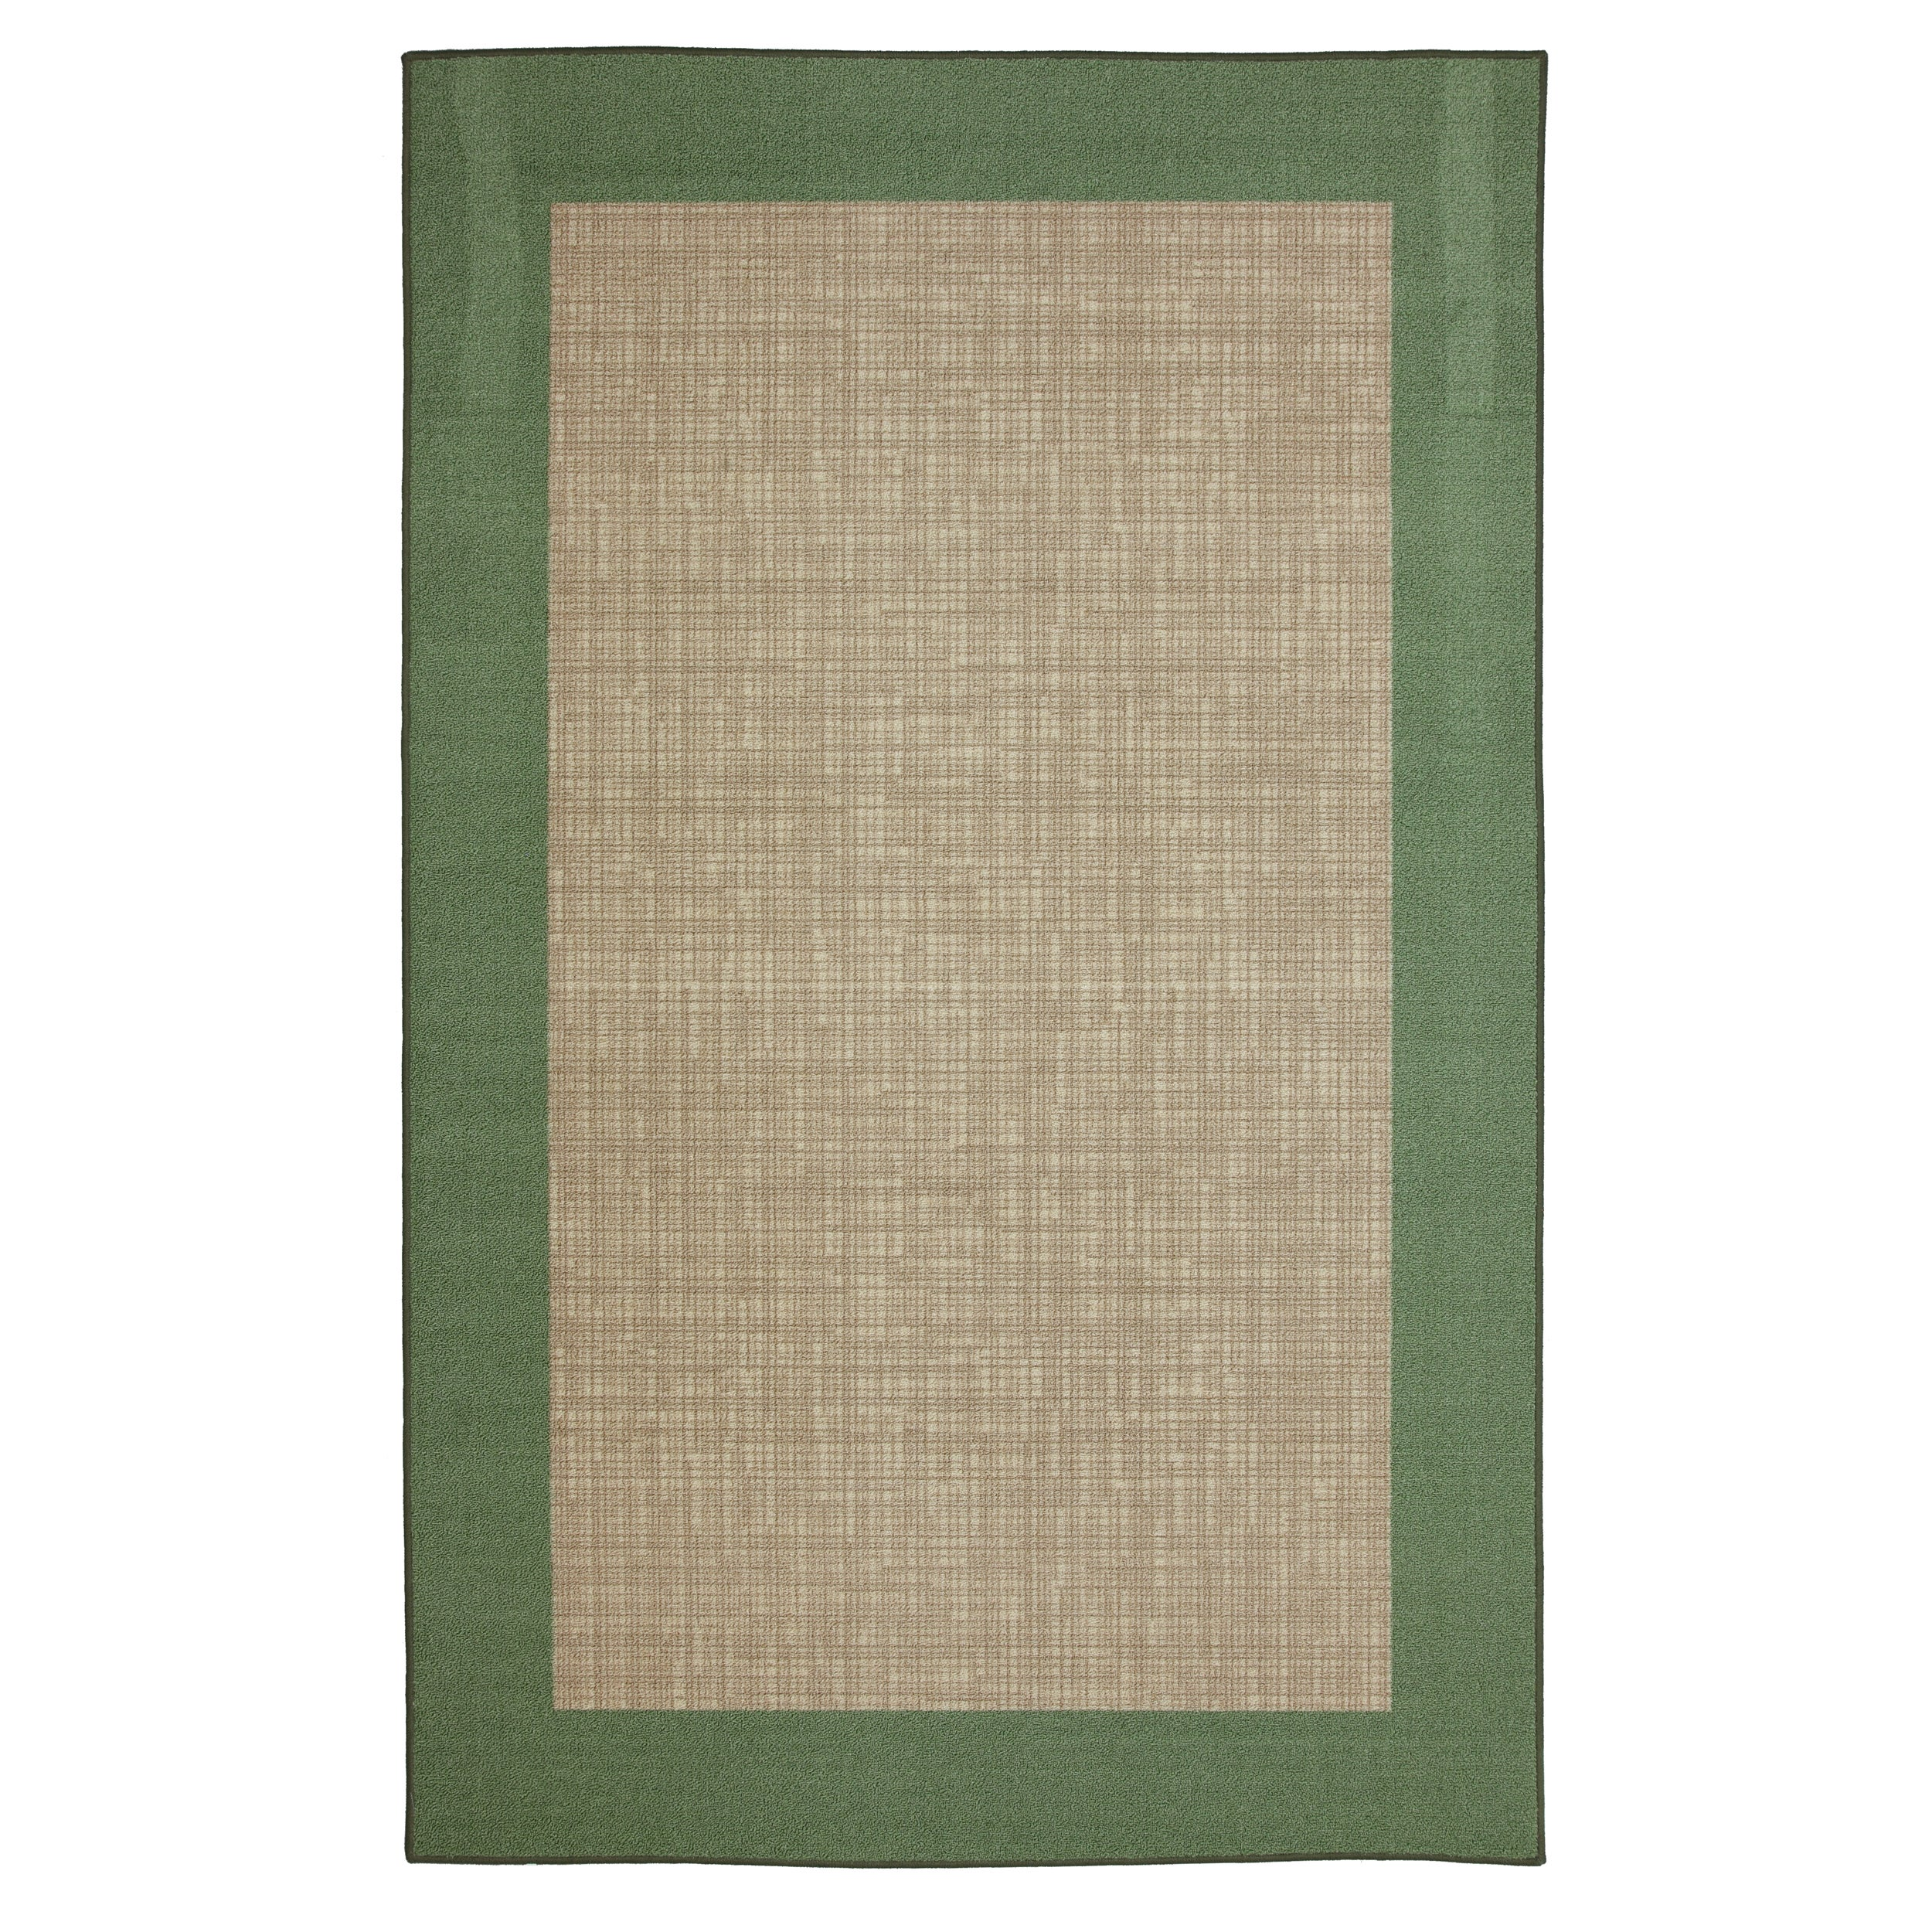 Indoor Outdoor Crosshatch Lime Green Rug 5 x 8